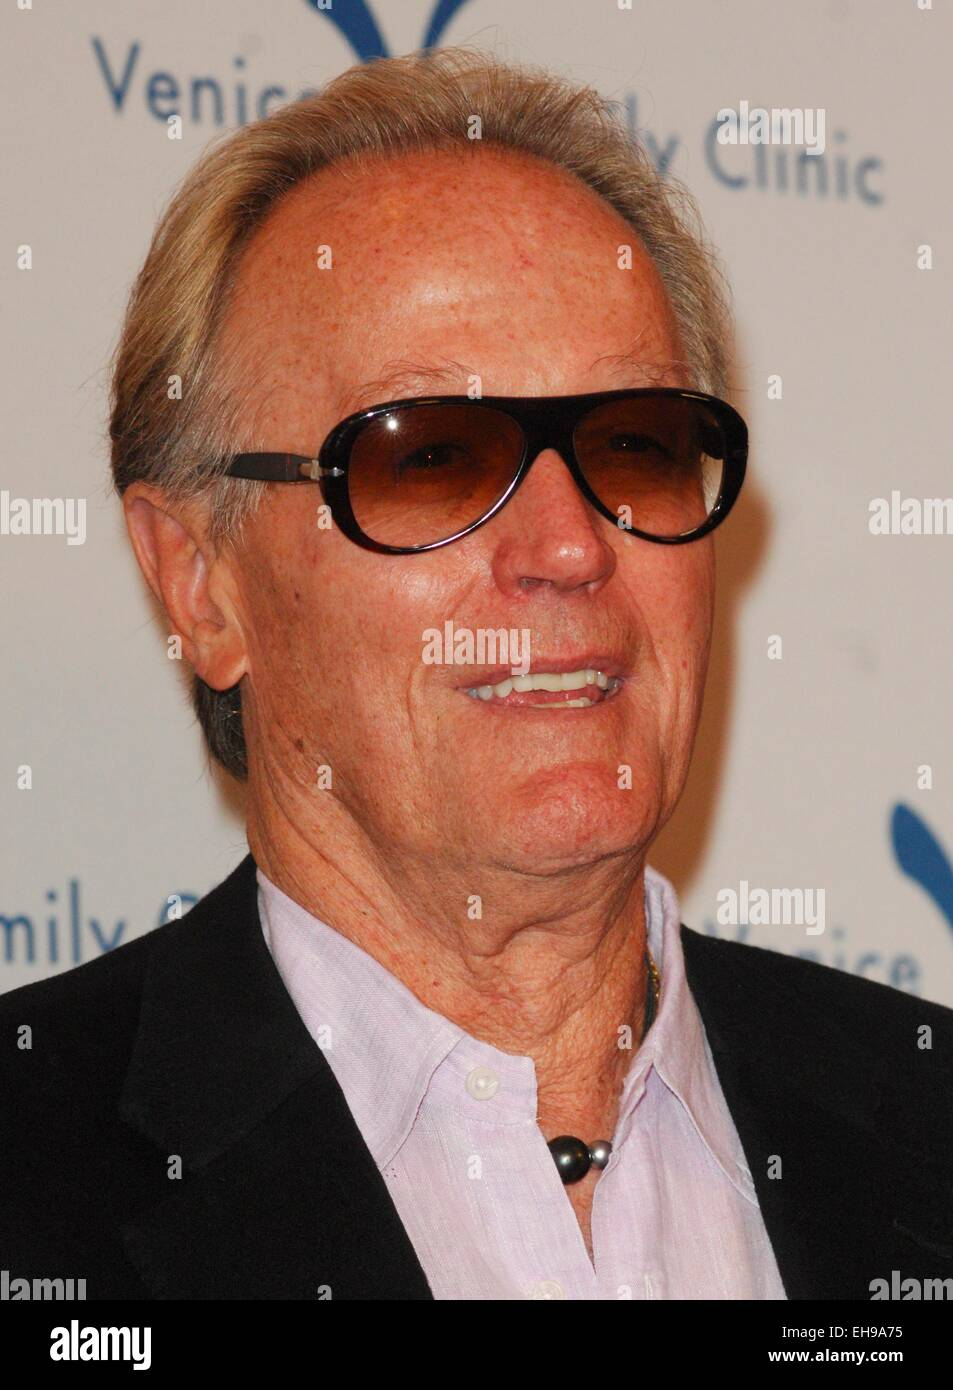 Beverly Hills, CA. 9th Mar, 2015. Peter Fonda at arrivals for 2015 Silver Circle Gala, The Beverly Wilshire Hotel, - Stock Image